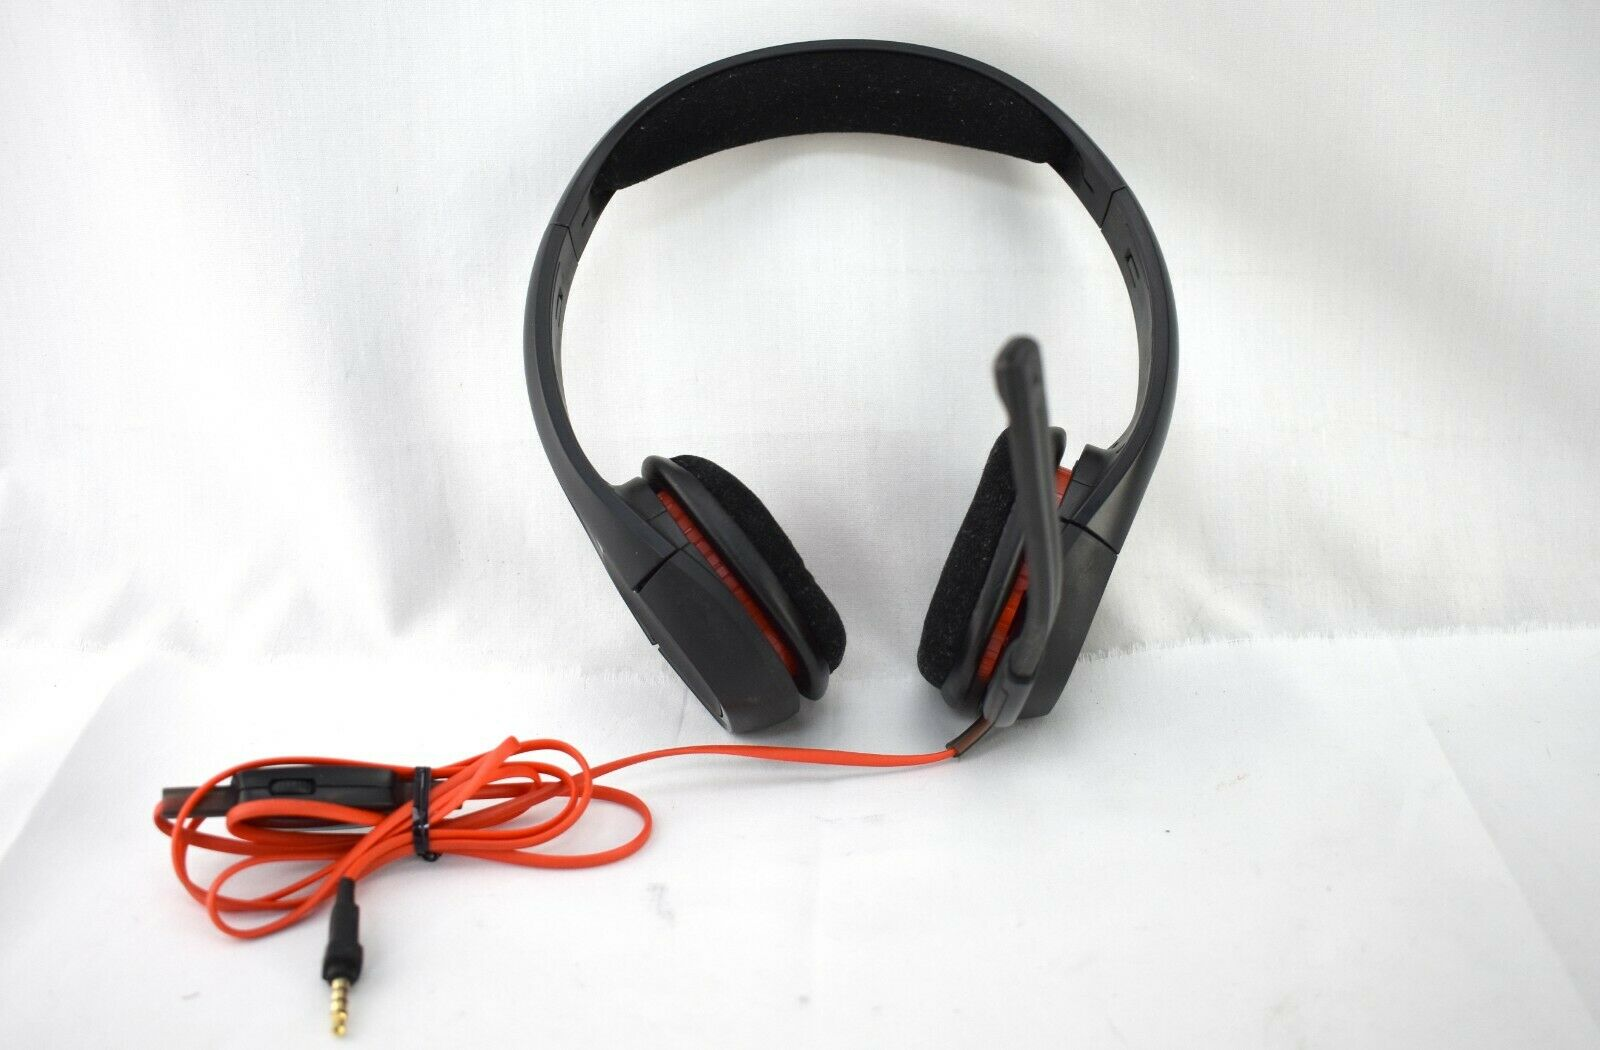 187f82c1d0a ... UPC 017229149724 product image for Plantronics - Gamecom 318 Over-the-ear  Gaming Headset